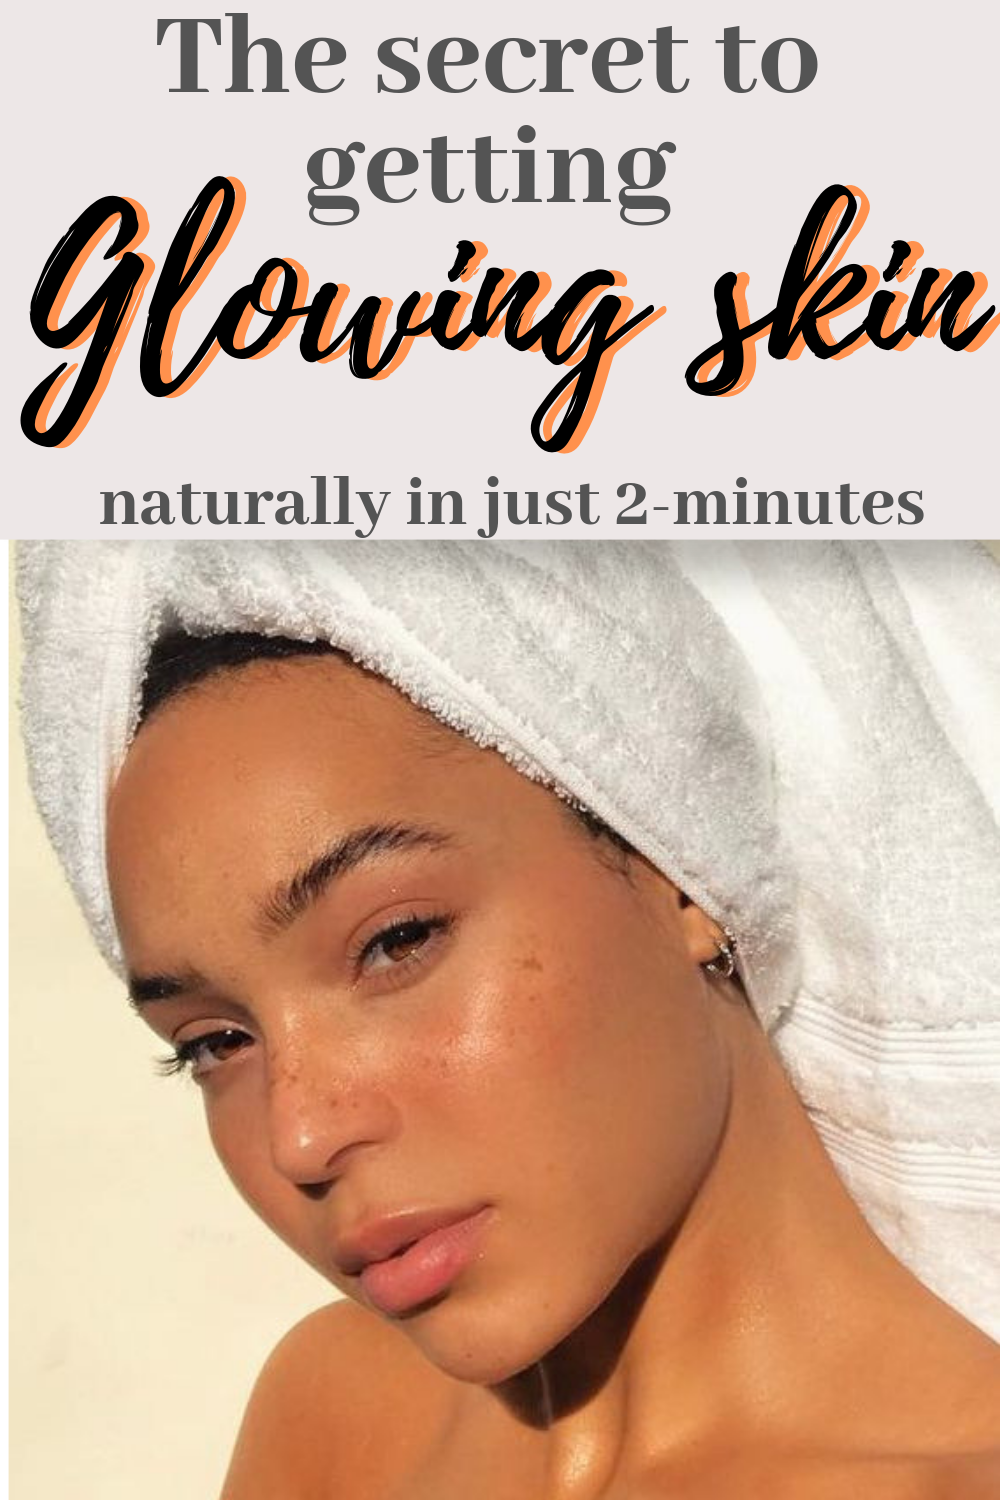 Glowing skin how to get naturally black women